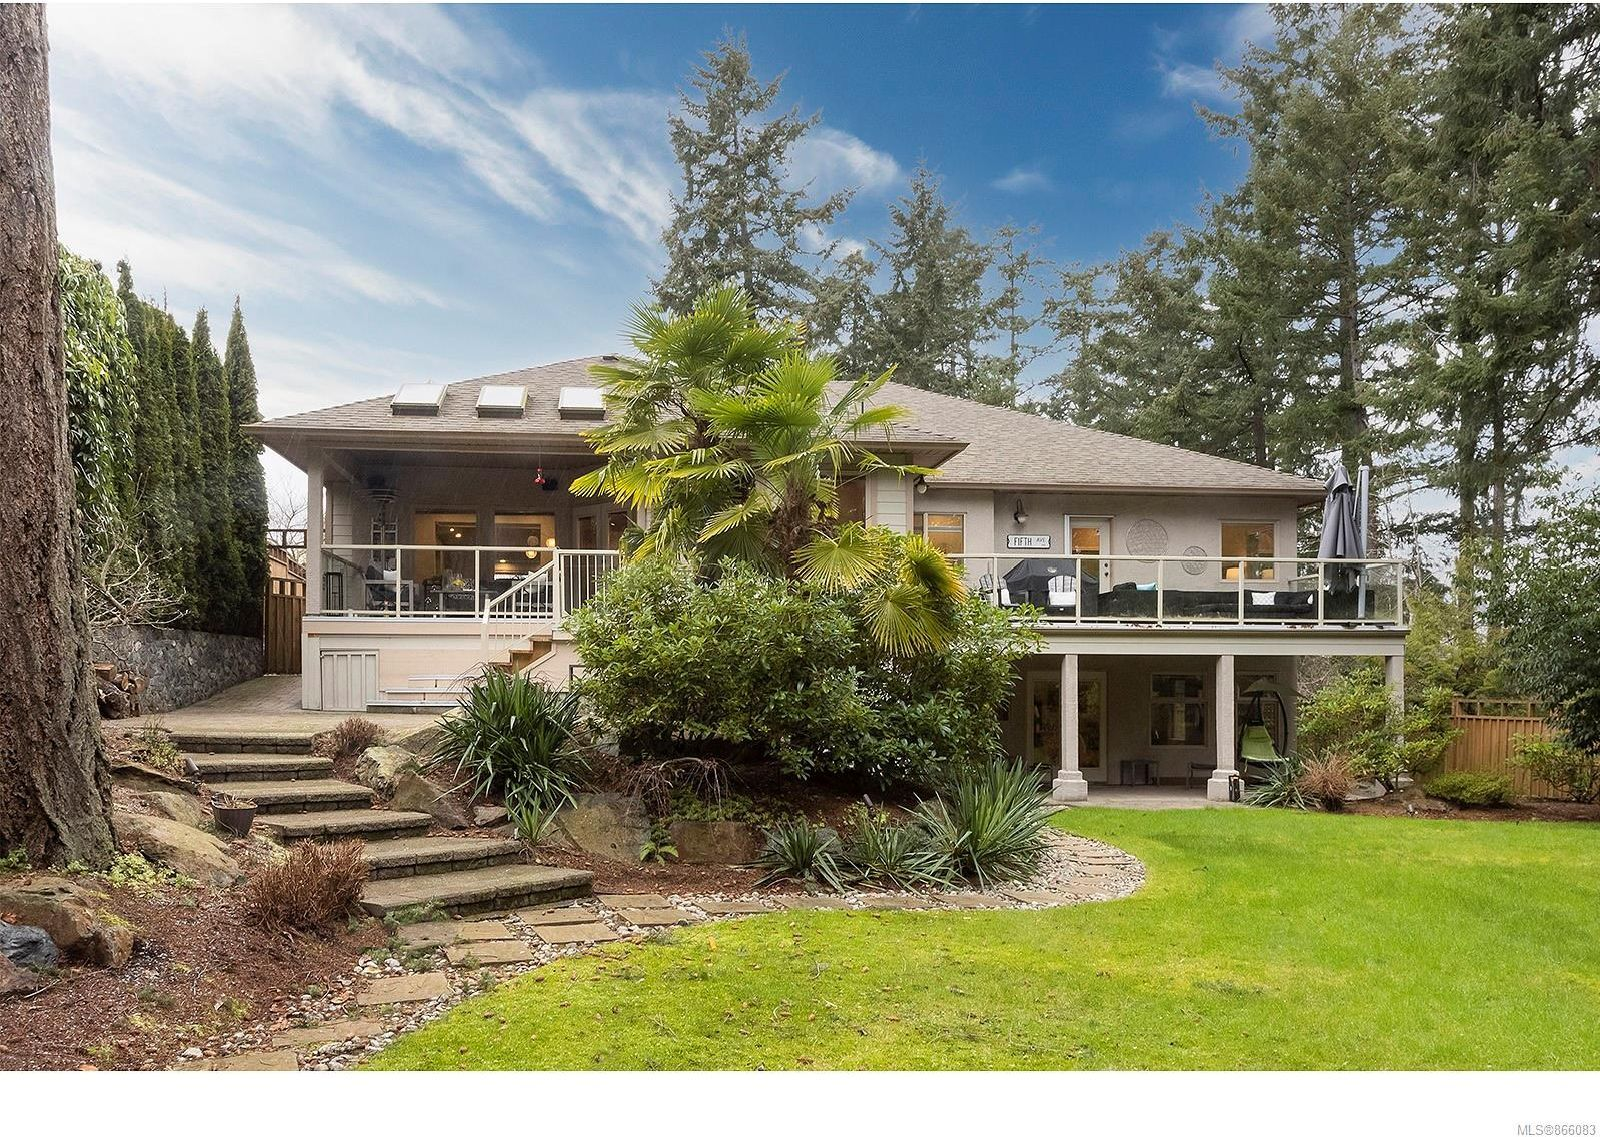 Photo 2: Photos: 5302 Sayward Hill Cres in : SE Cordova Bay House for sale (Saanich East)  : MLS®# 866083